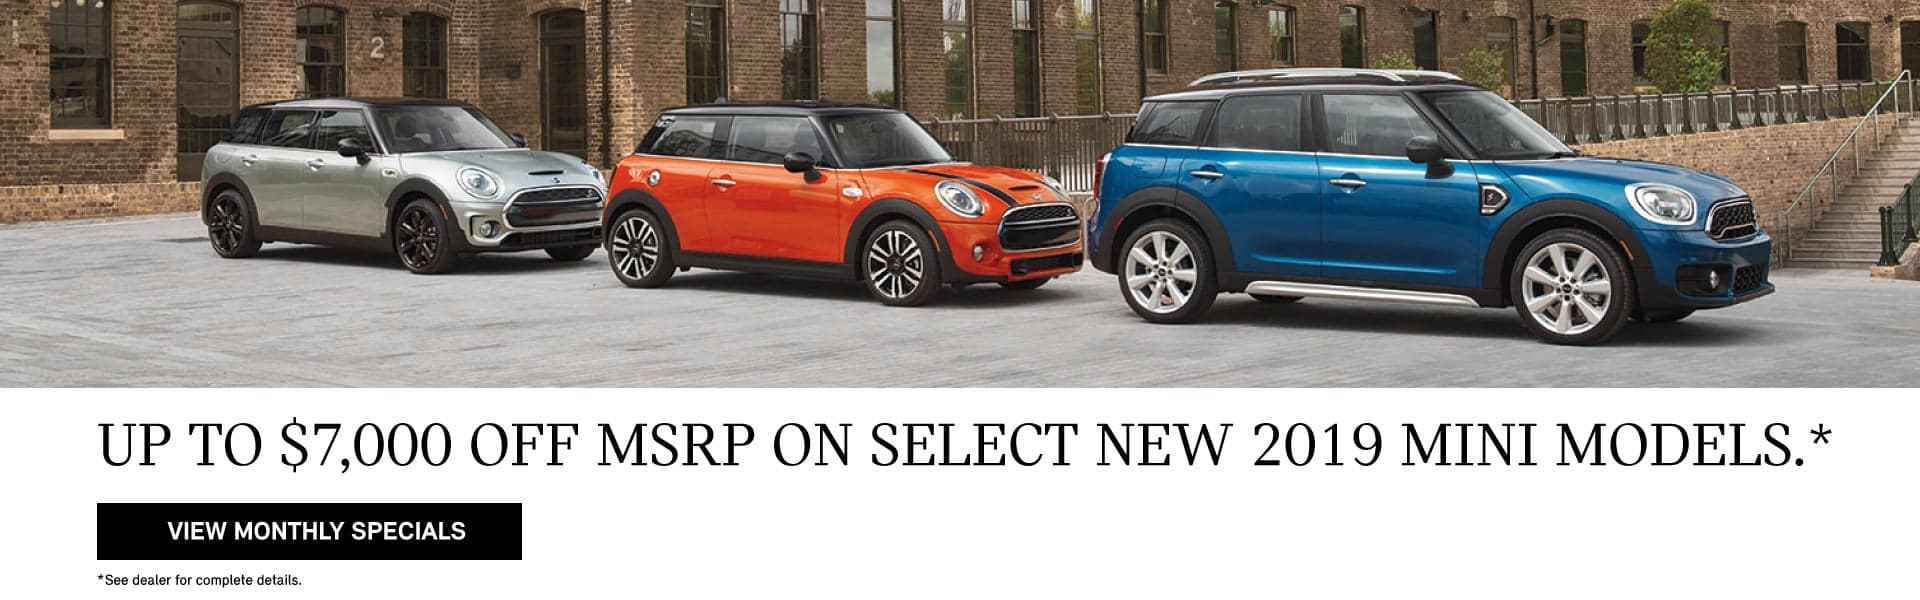 Up to $7000 off MSRP on Select New 2019 MINI Models